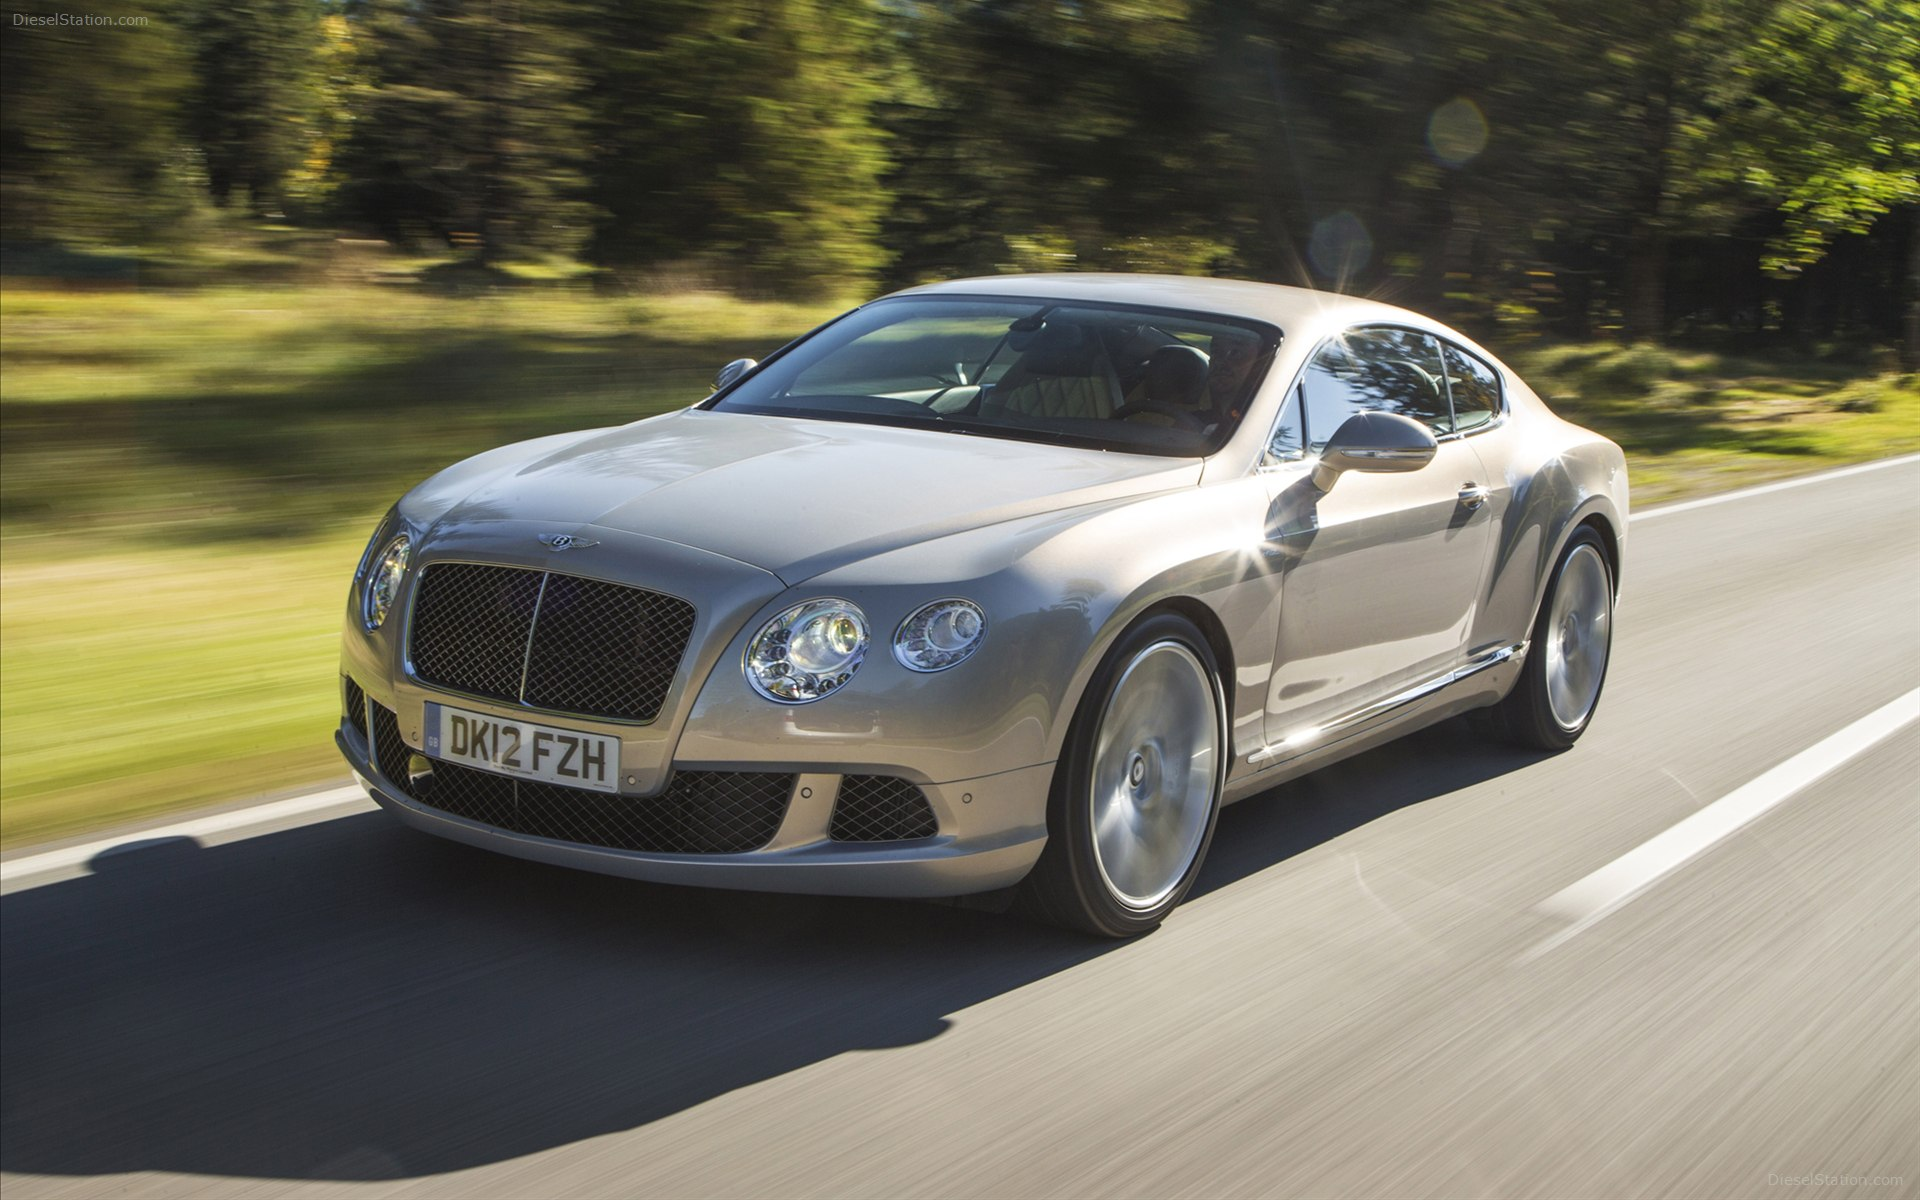 2013 Bentley Continental Gt Speed #2